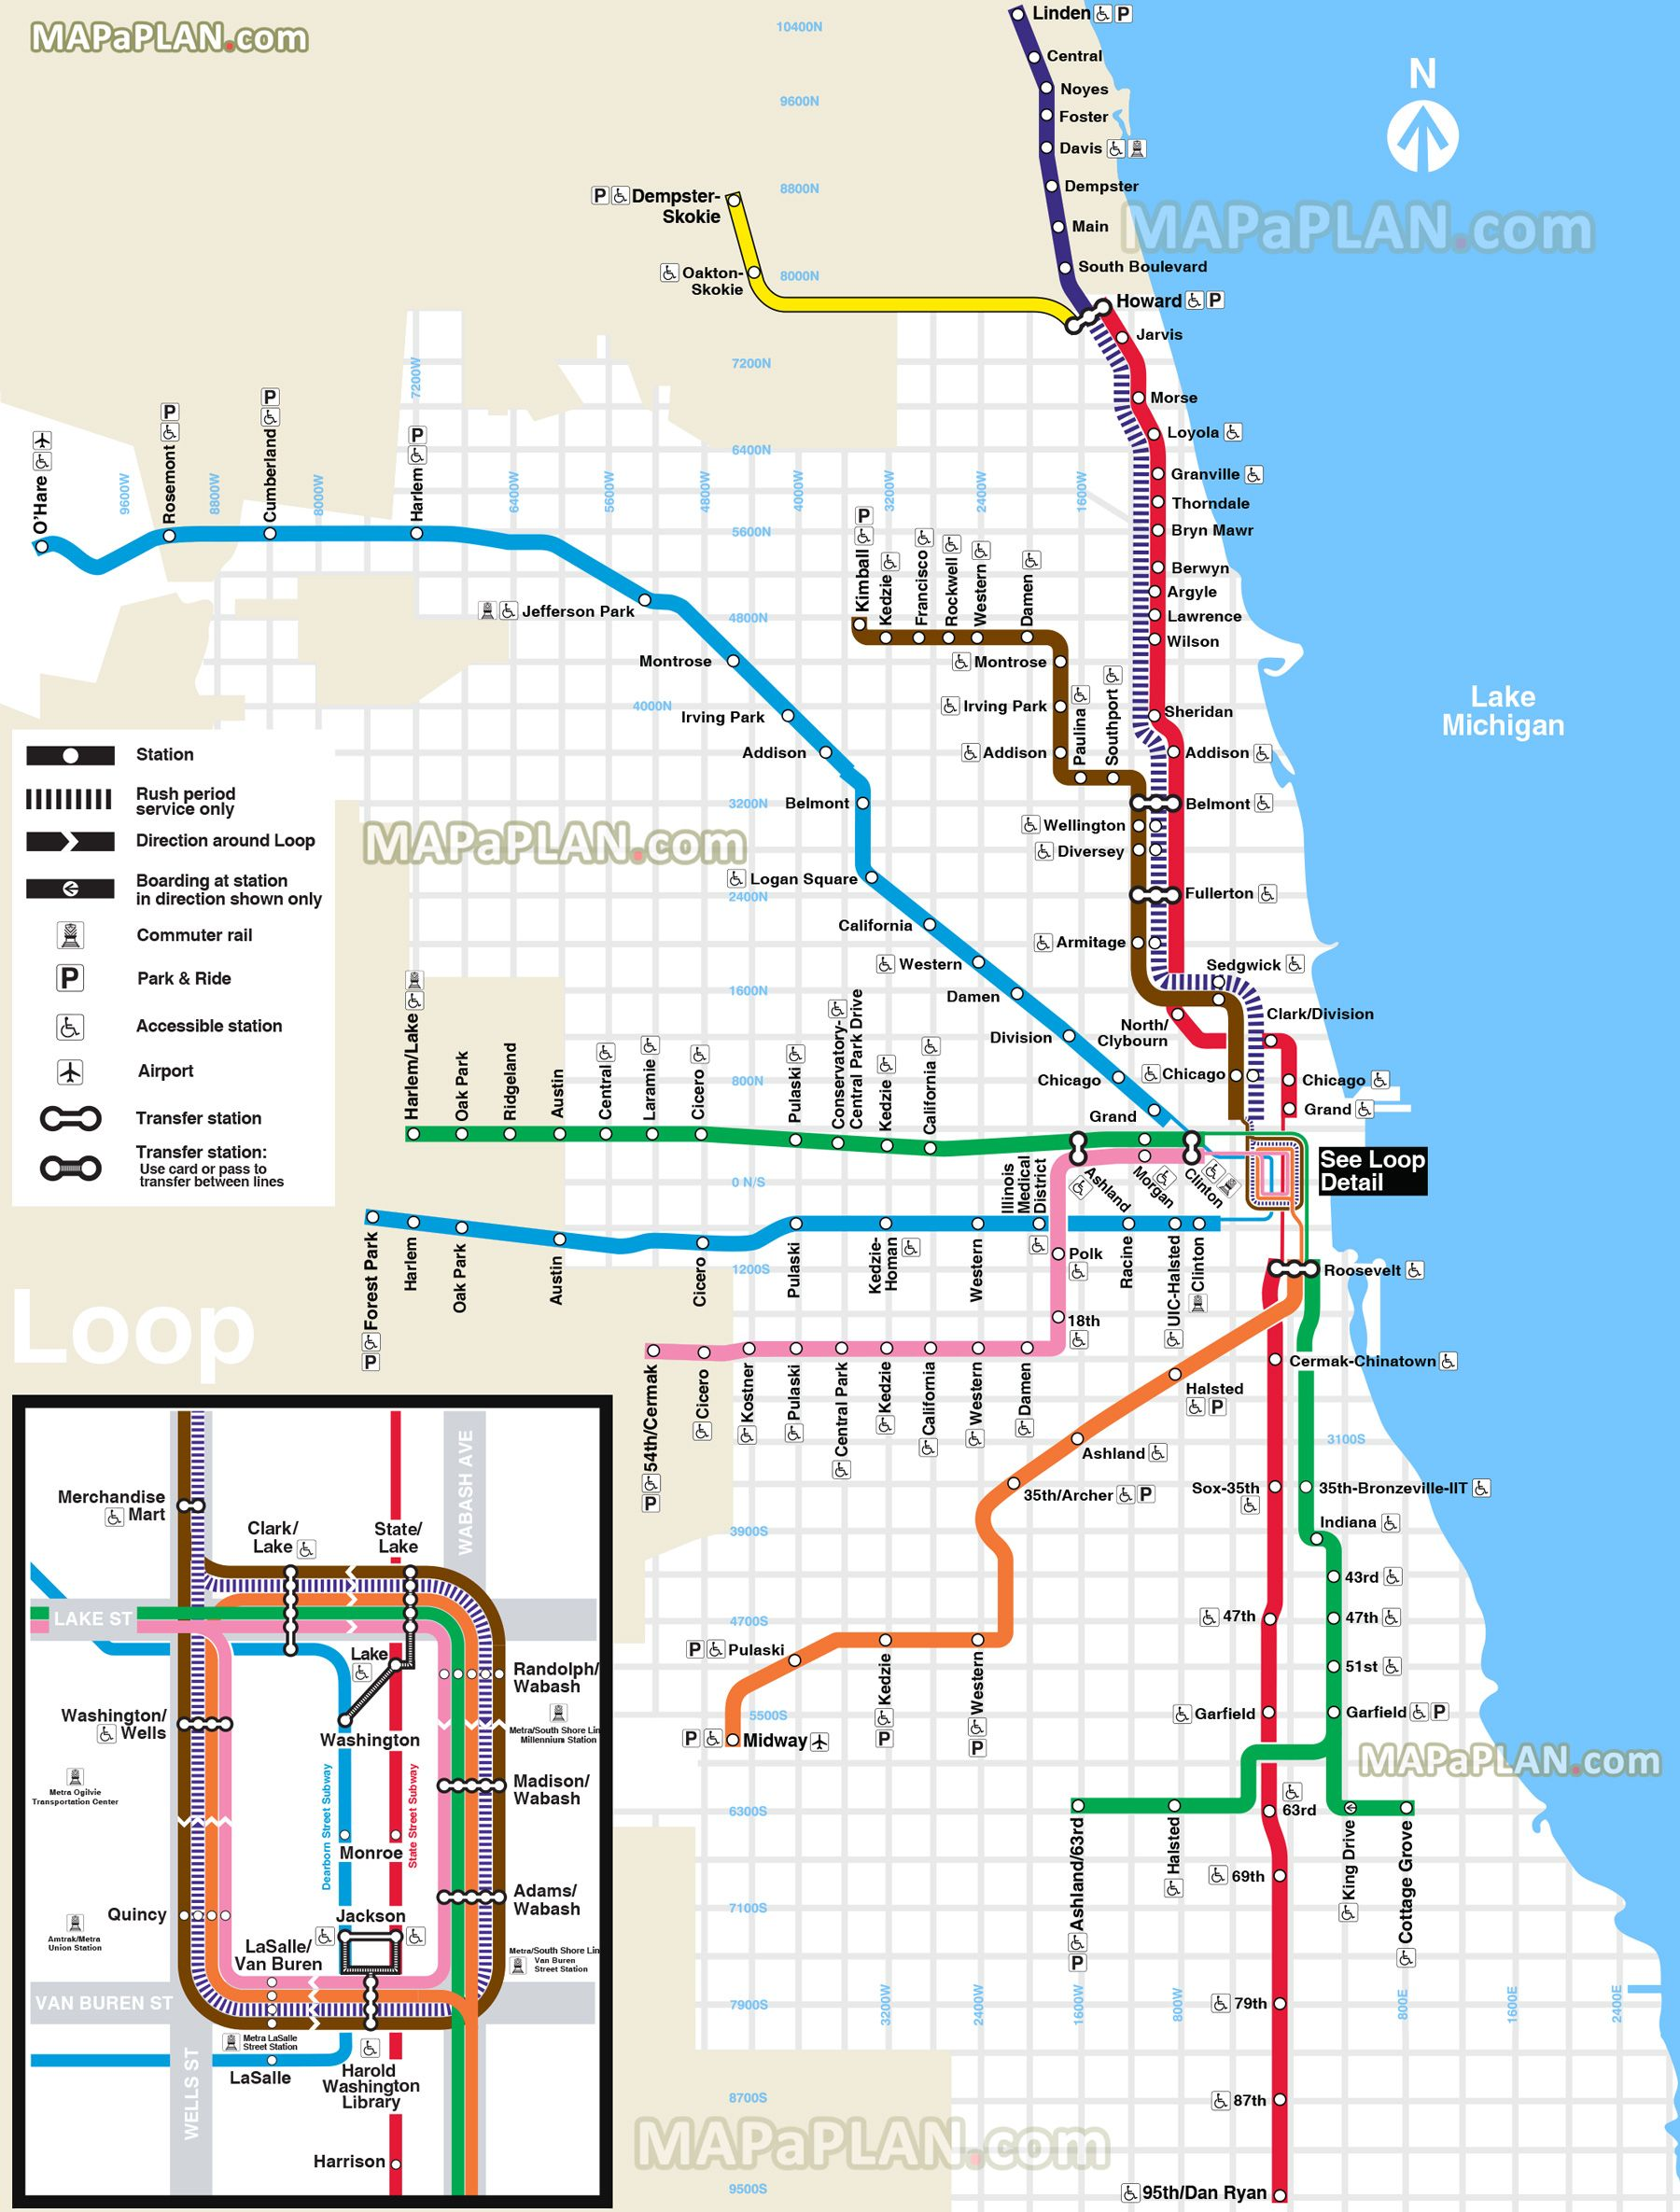 chicago transit map Travel Pinterest Travel maps Chicago and